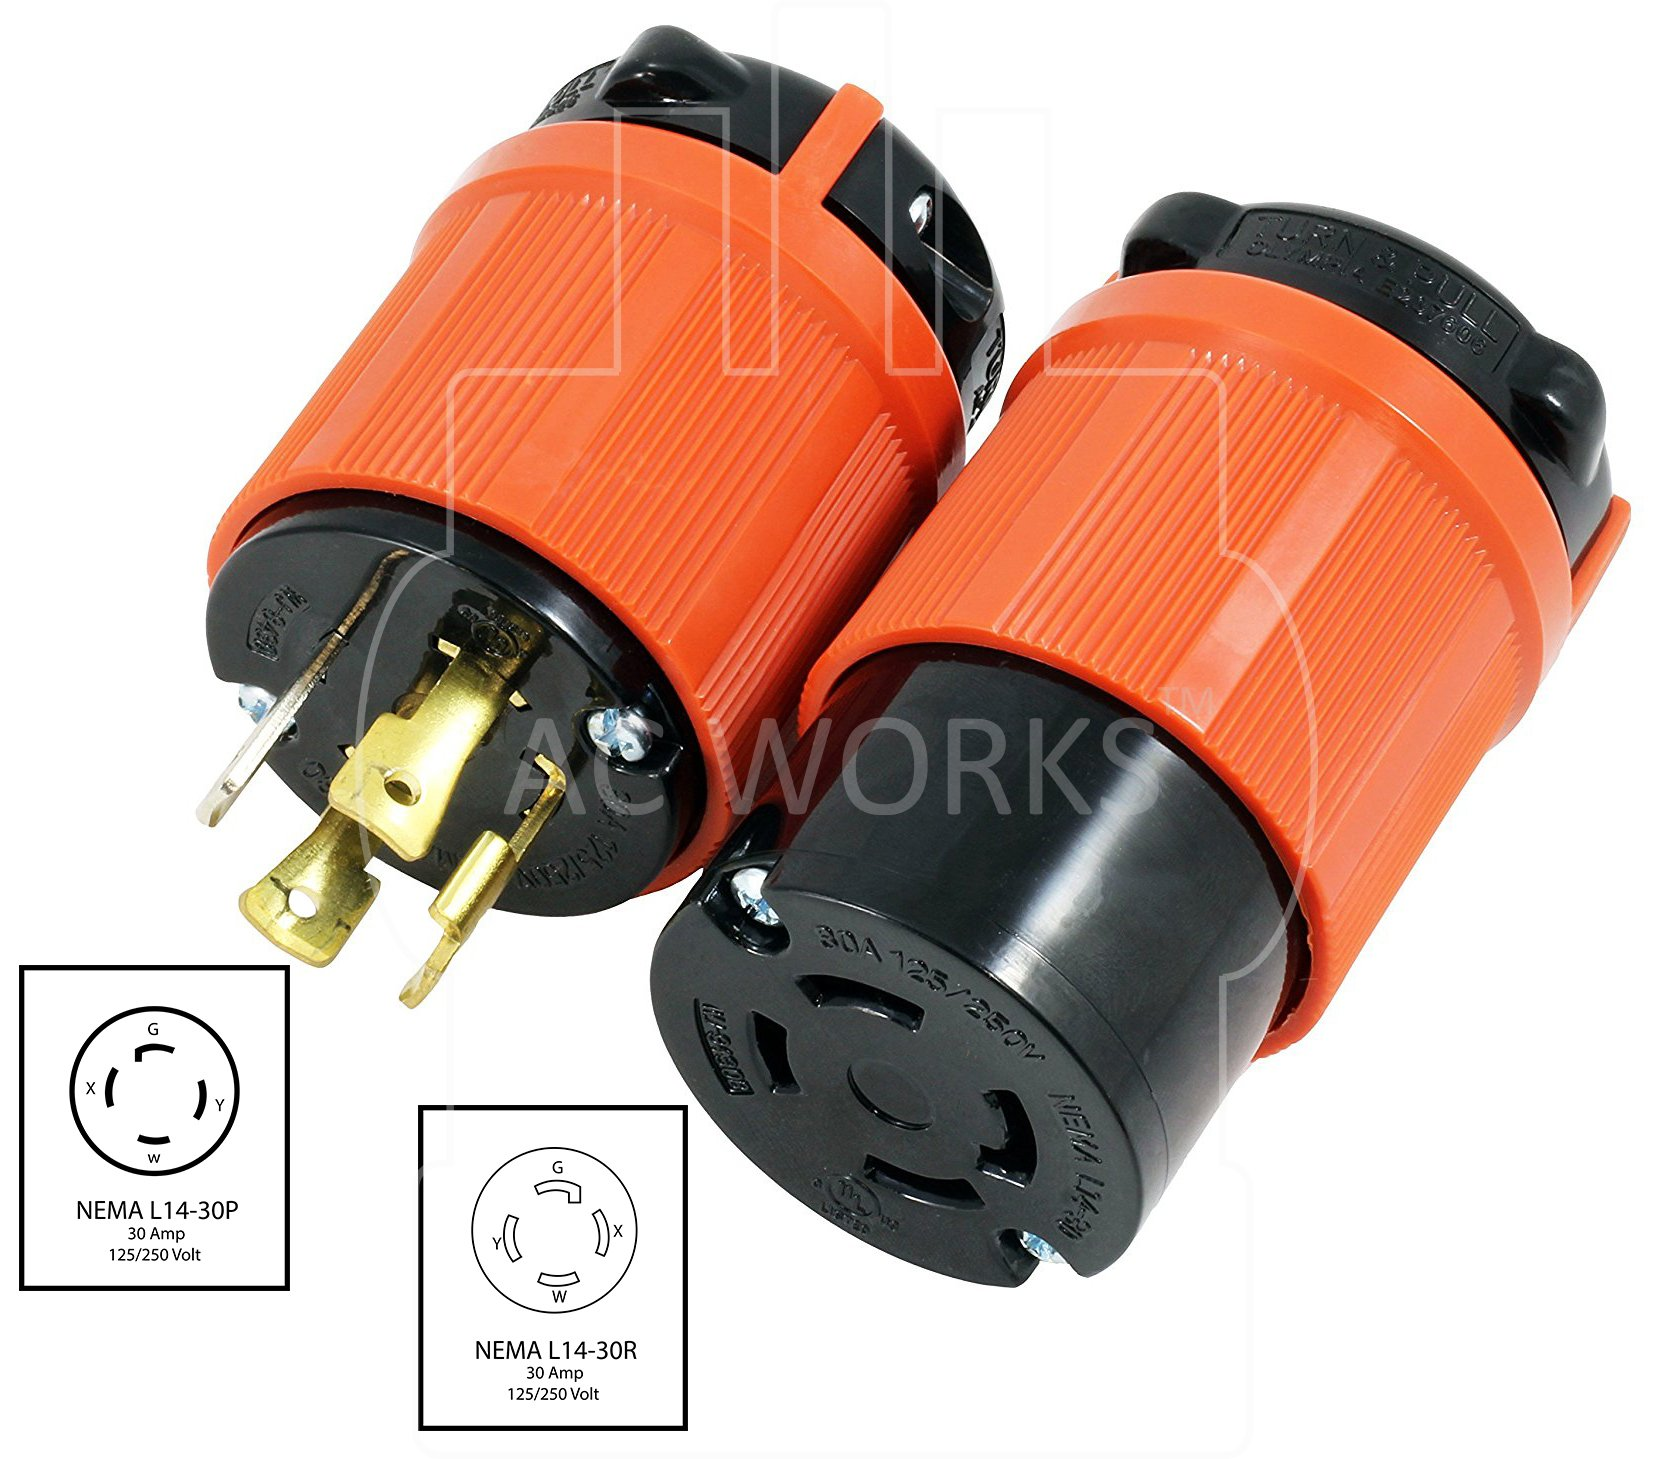 AC WORKS [ASL1430PR] NEMA L14-30 30Amp 125/250Volt 4Prong Locking Male Plug and Female Connector With UL, C-UL Approval by AC WORKS (Image #2)